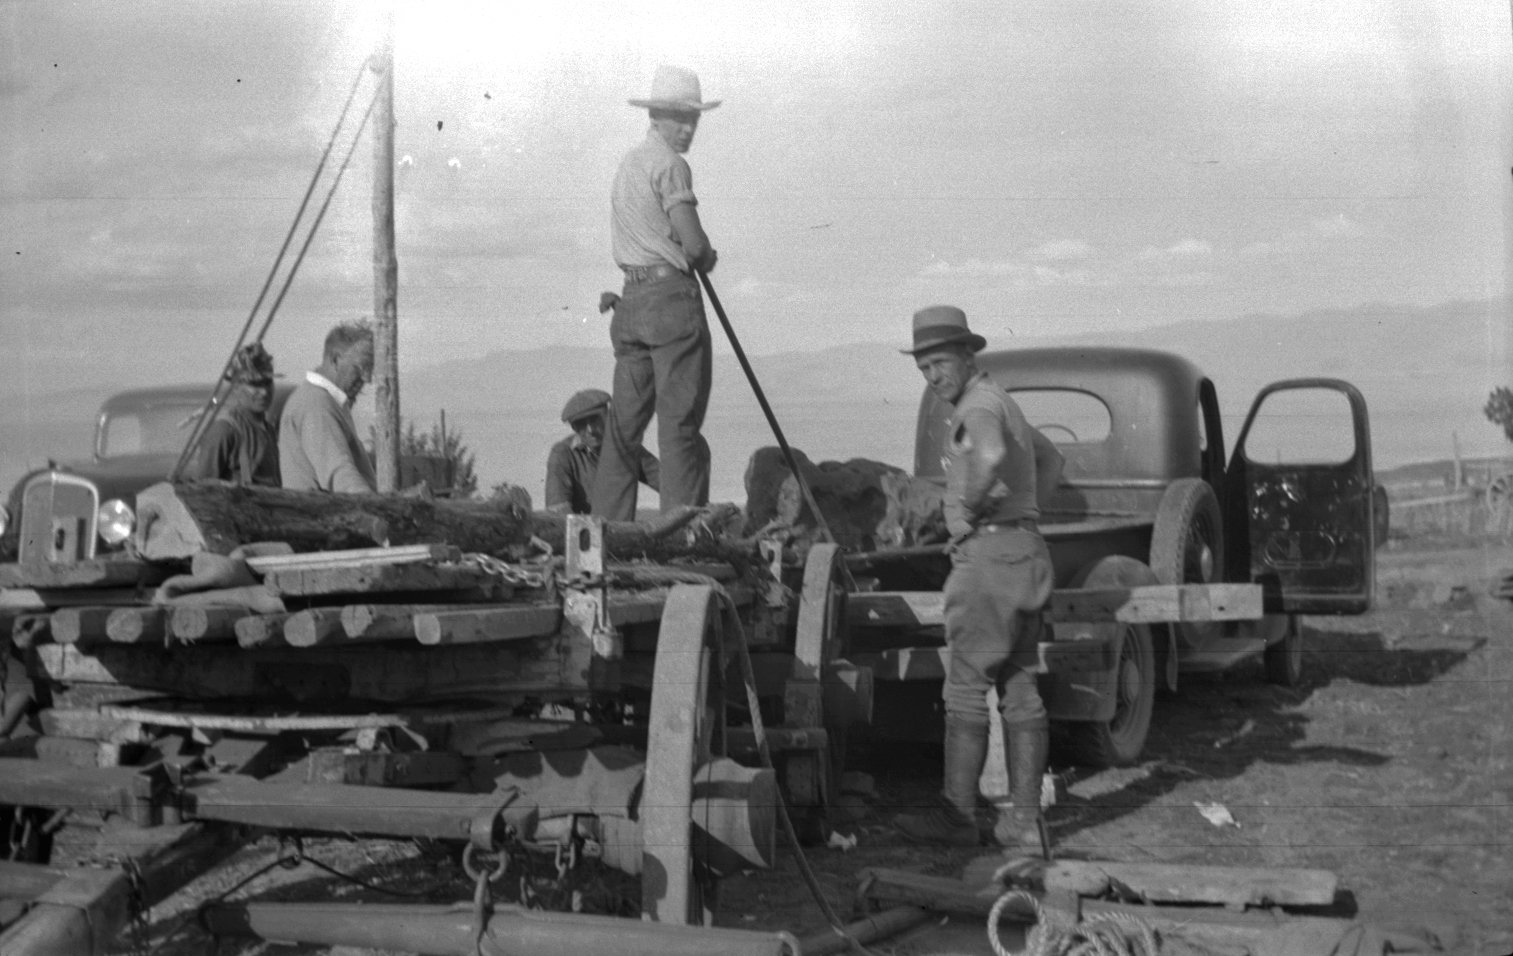 Transferring specimen from wagon to truck